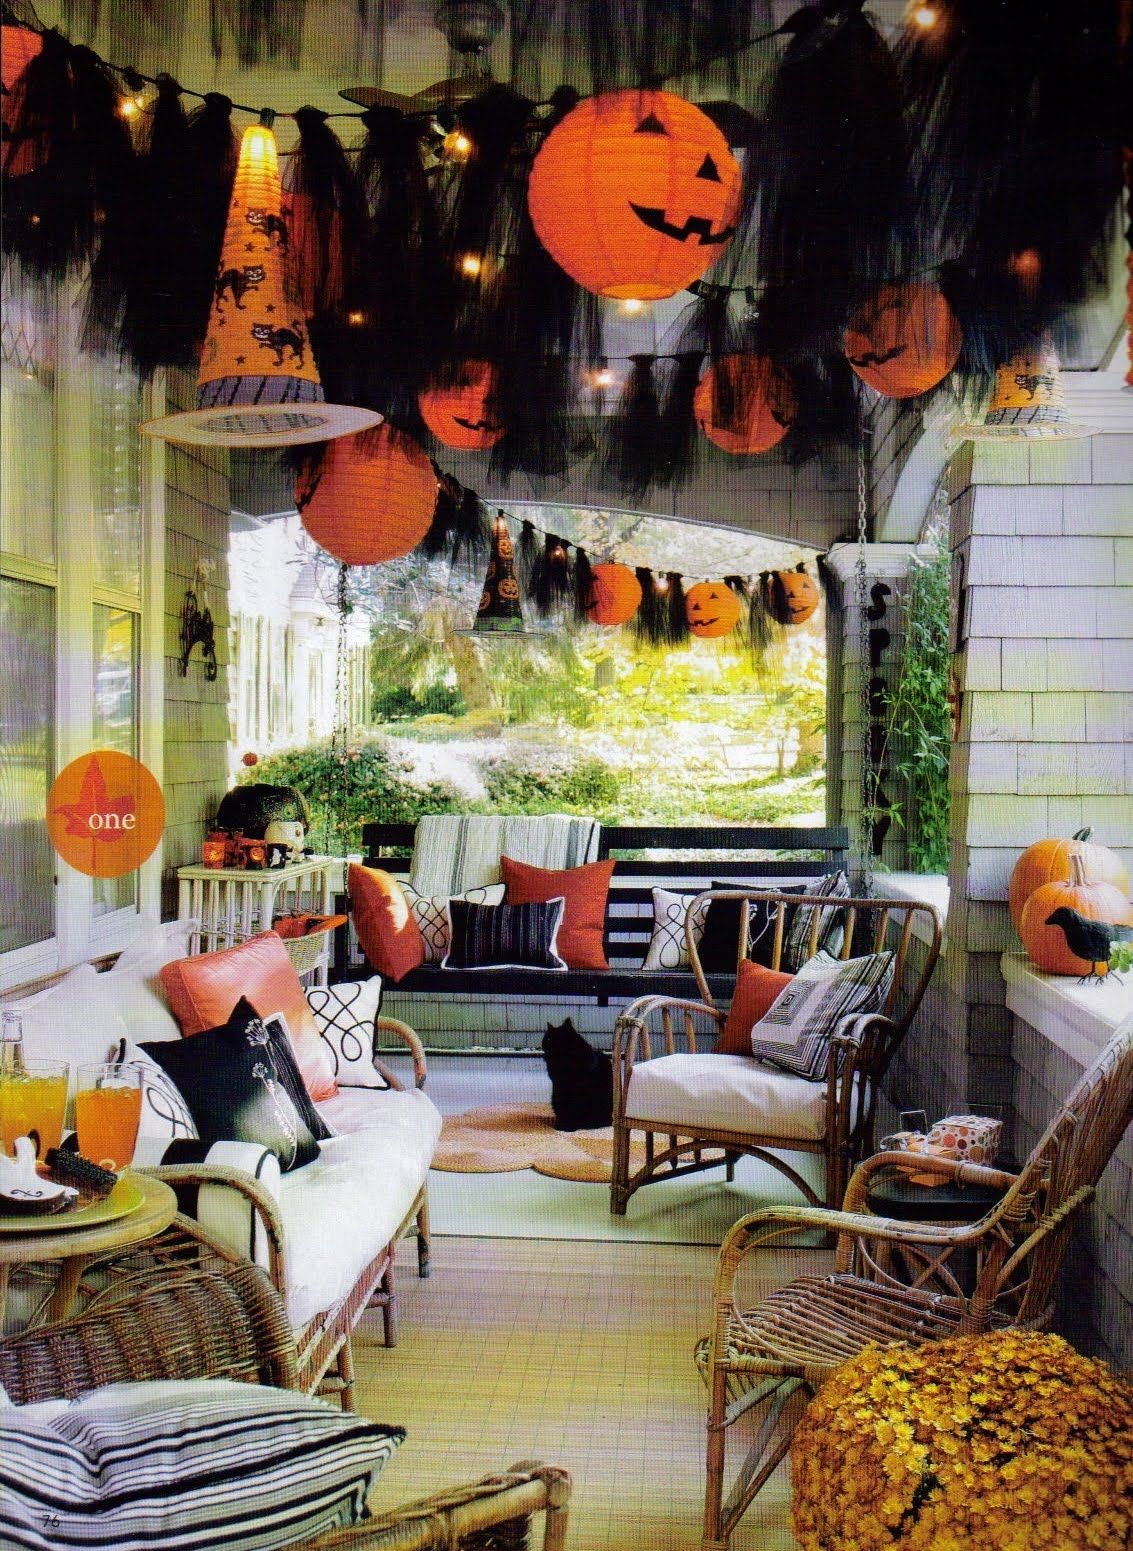 Love the tulle and jack o lantern pails strung